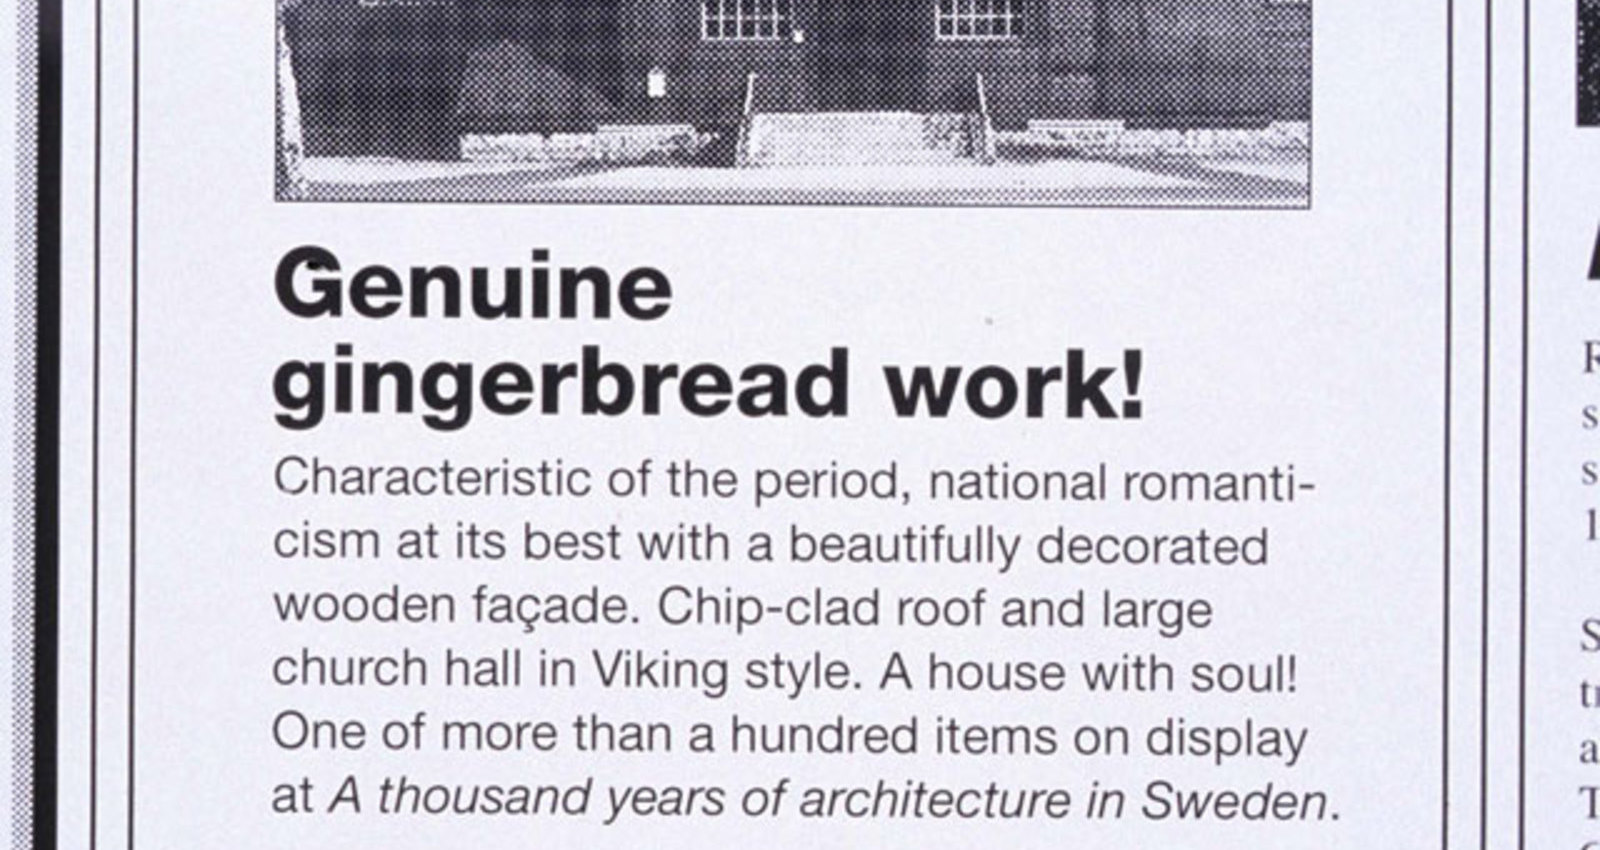 Designed by an architect! The island of sun and wind! Genuine gingerbread work! Genuine functional style! Romantic 18th century property!